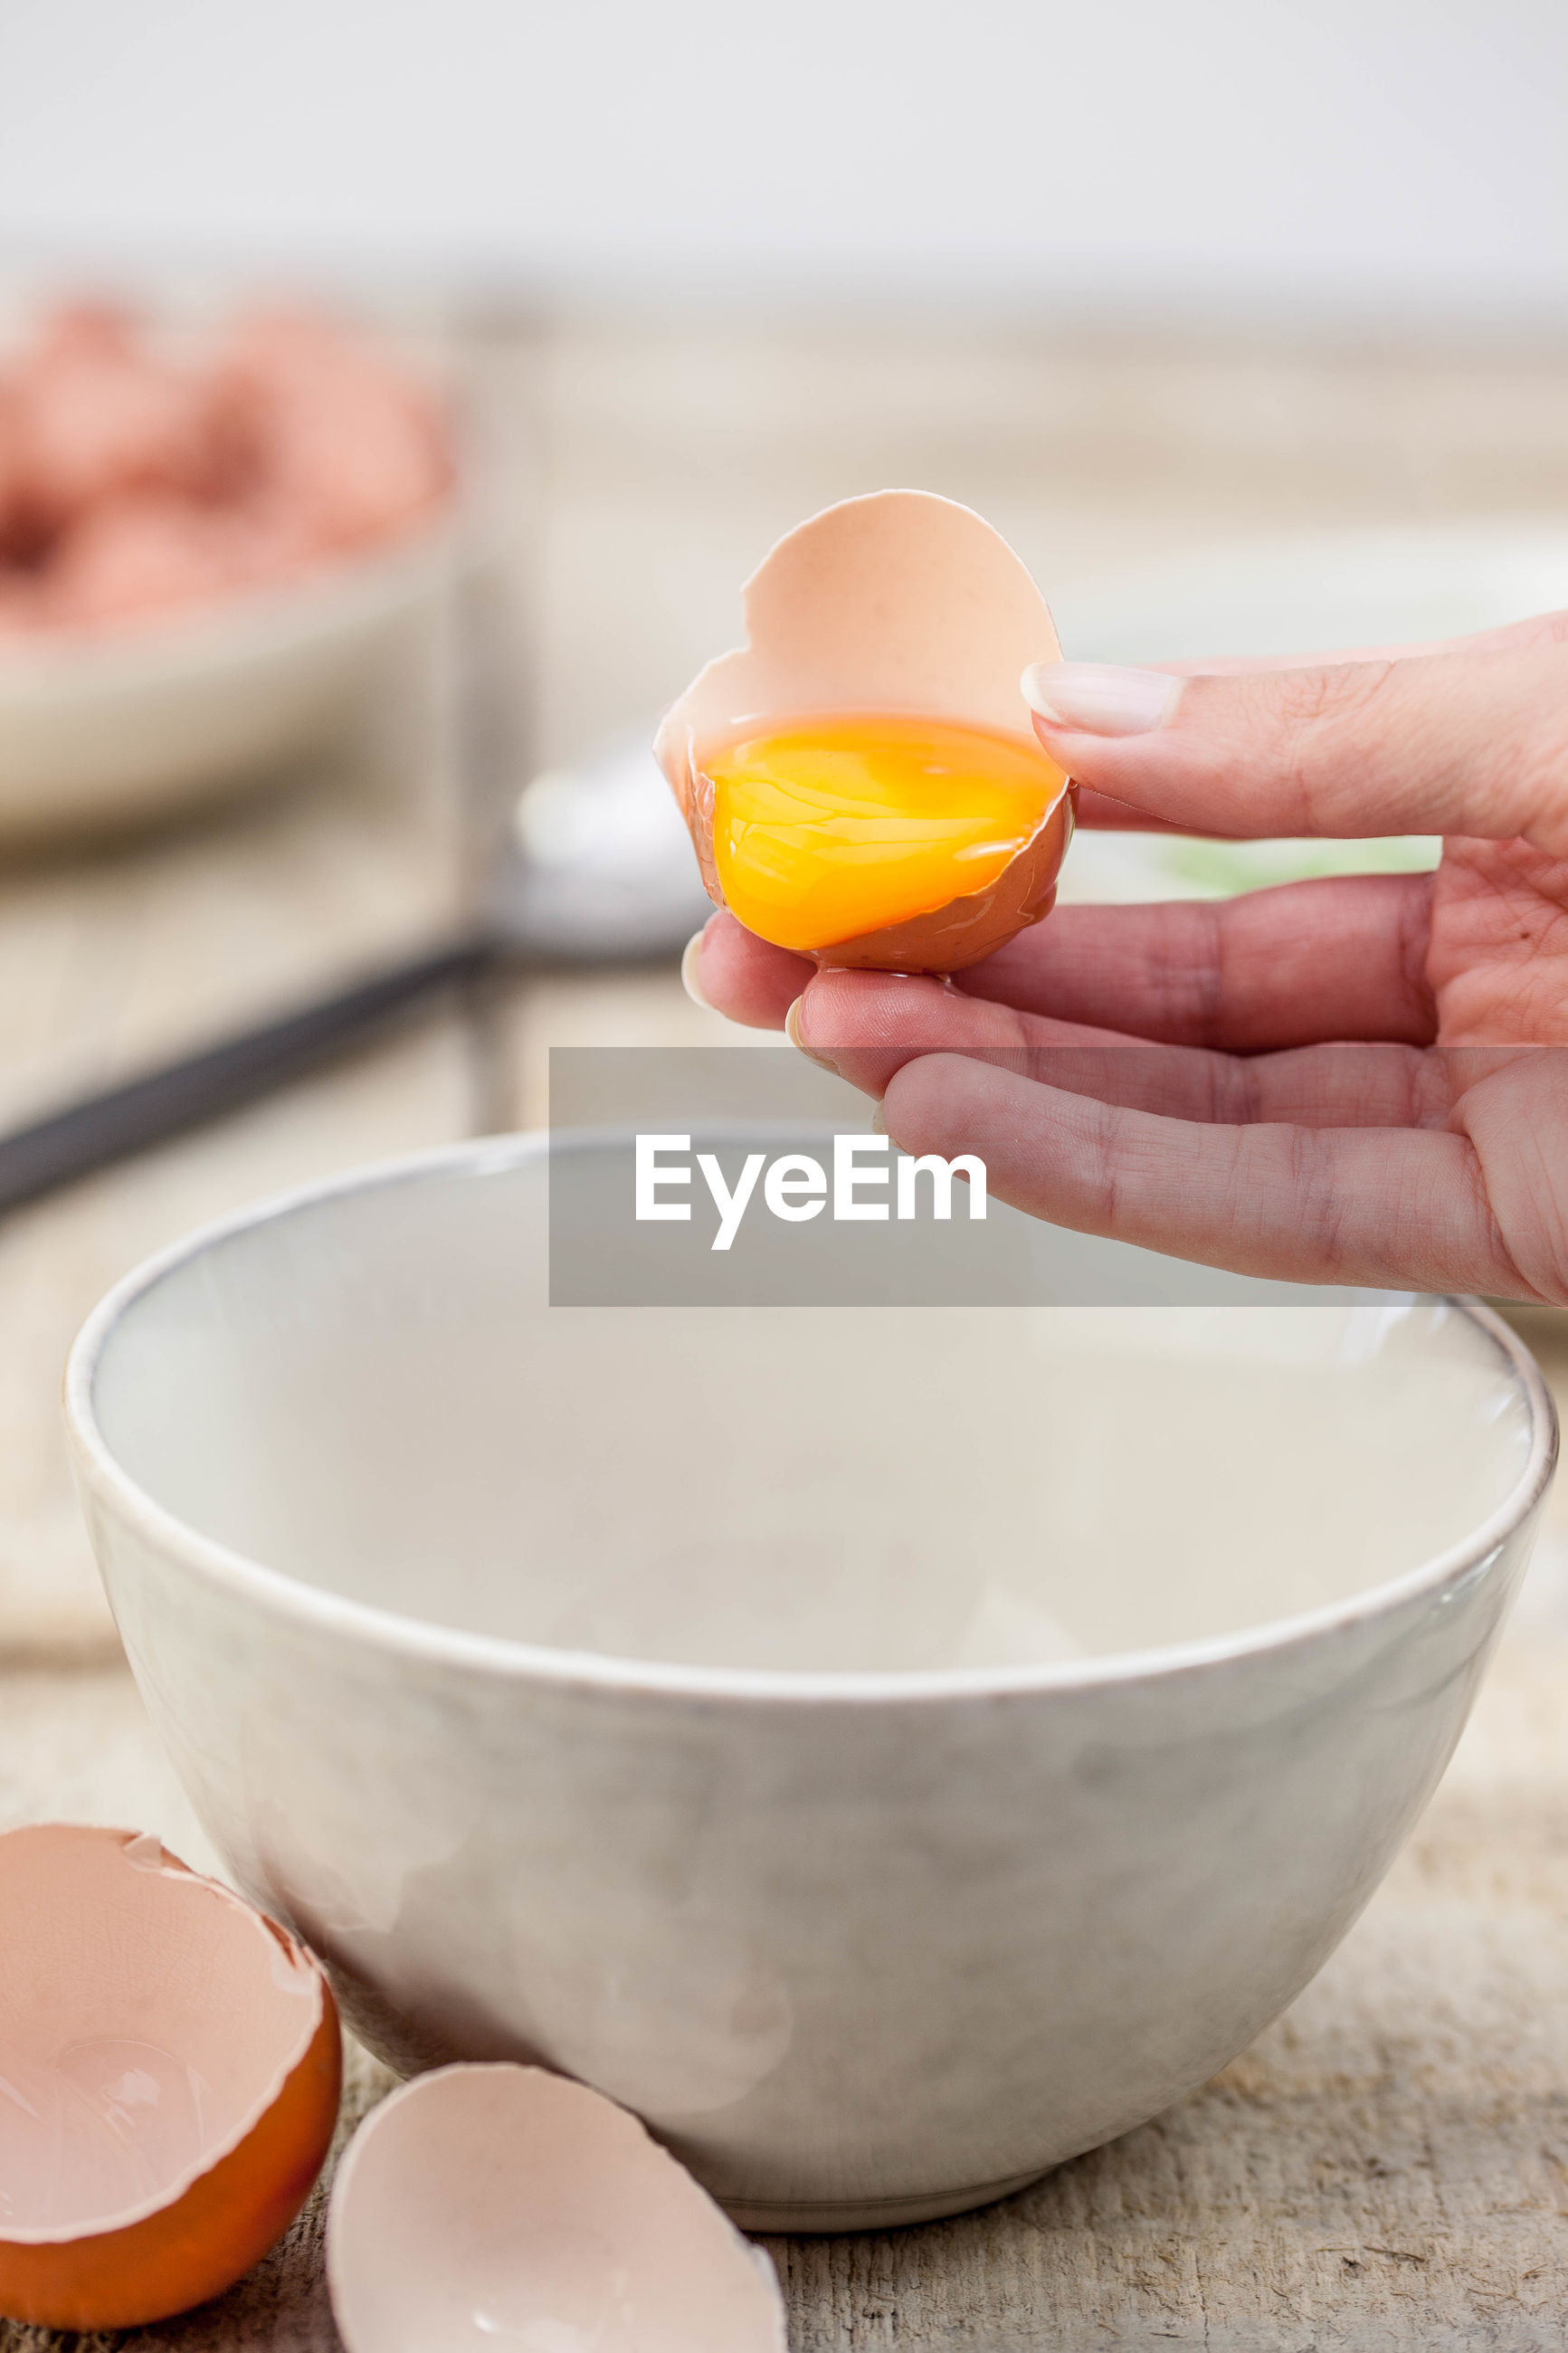 Cropped image of hand pouring egg in bowl